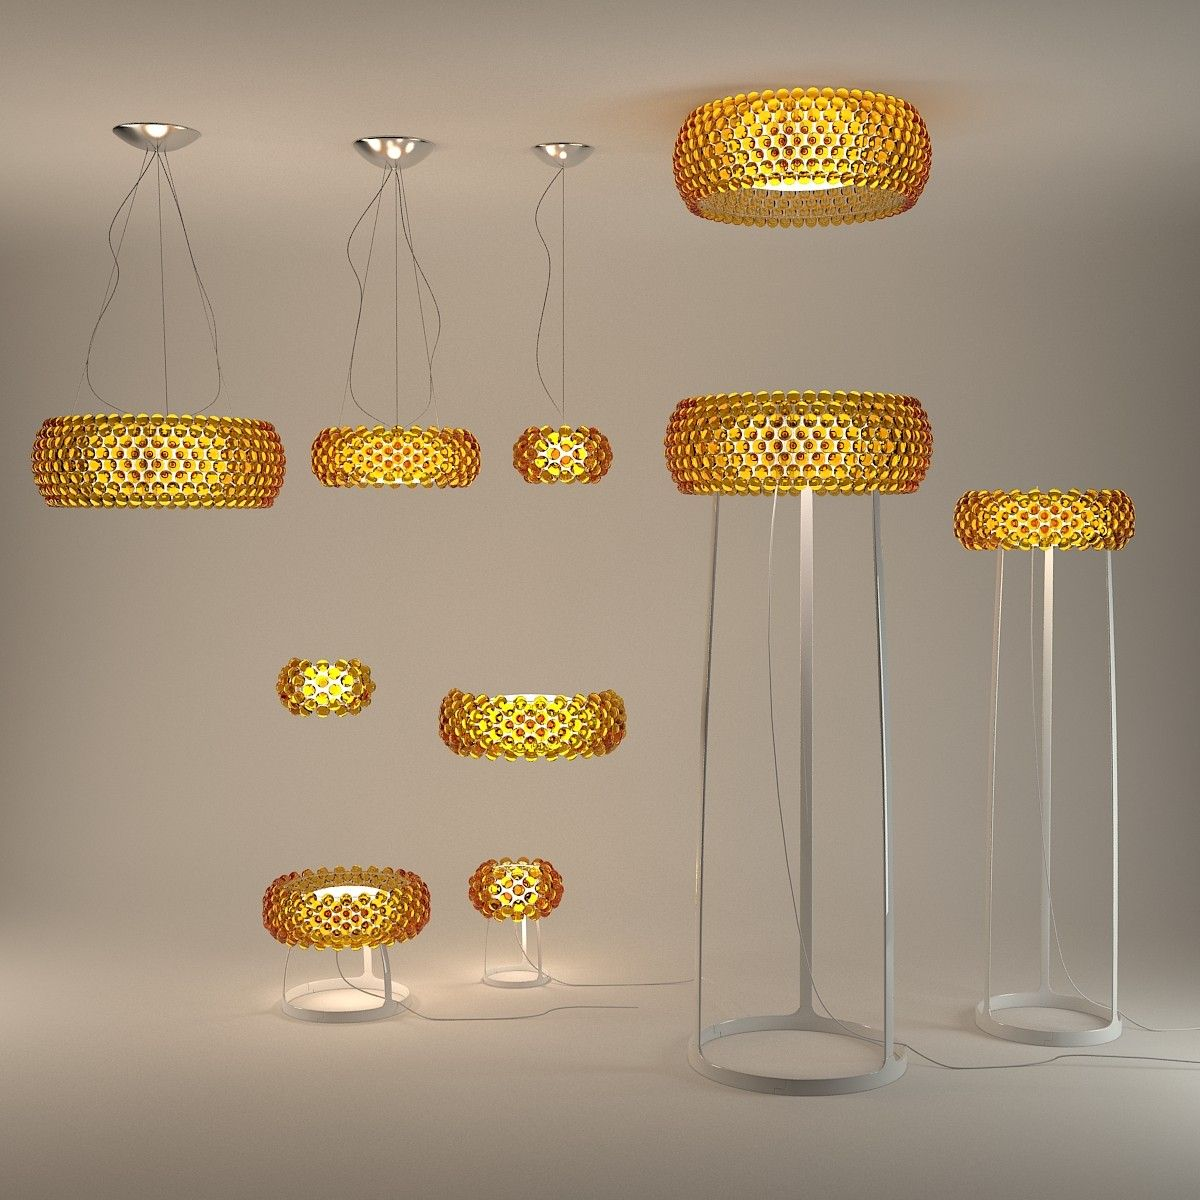 Lampe Caboche Patricia Urquiola caboche chandelier http://www.modernlamps/caboche